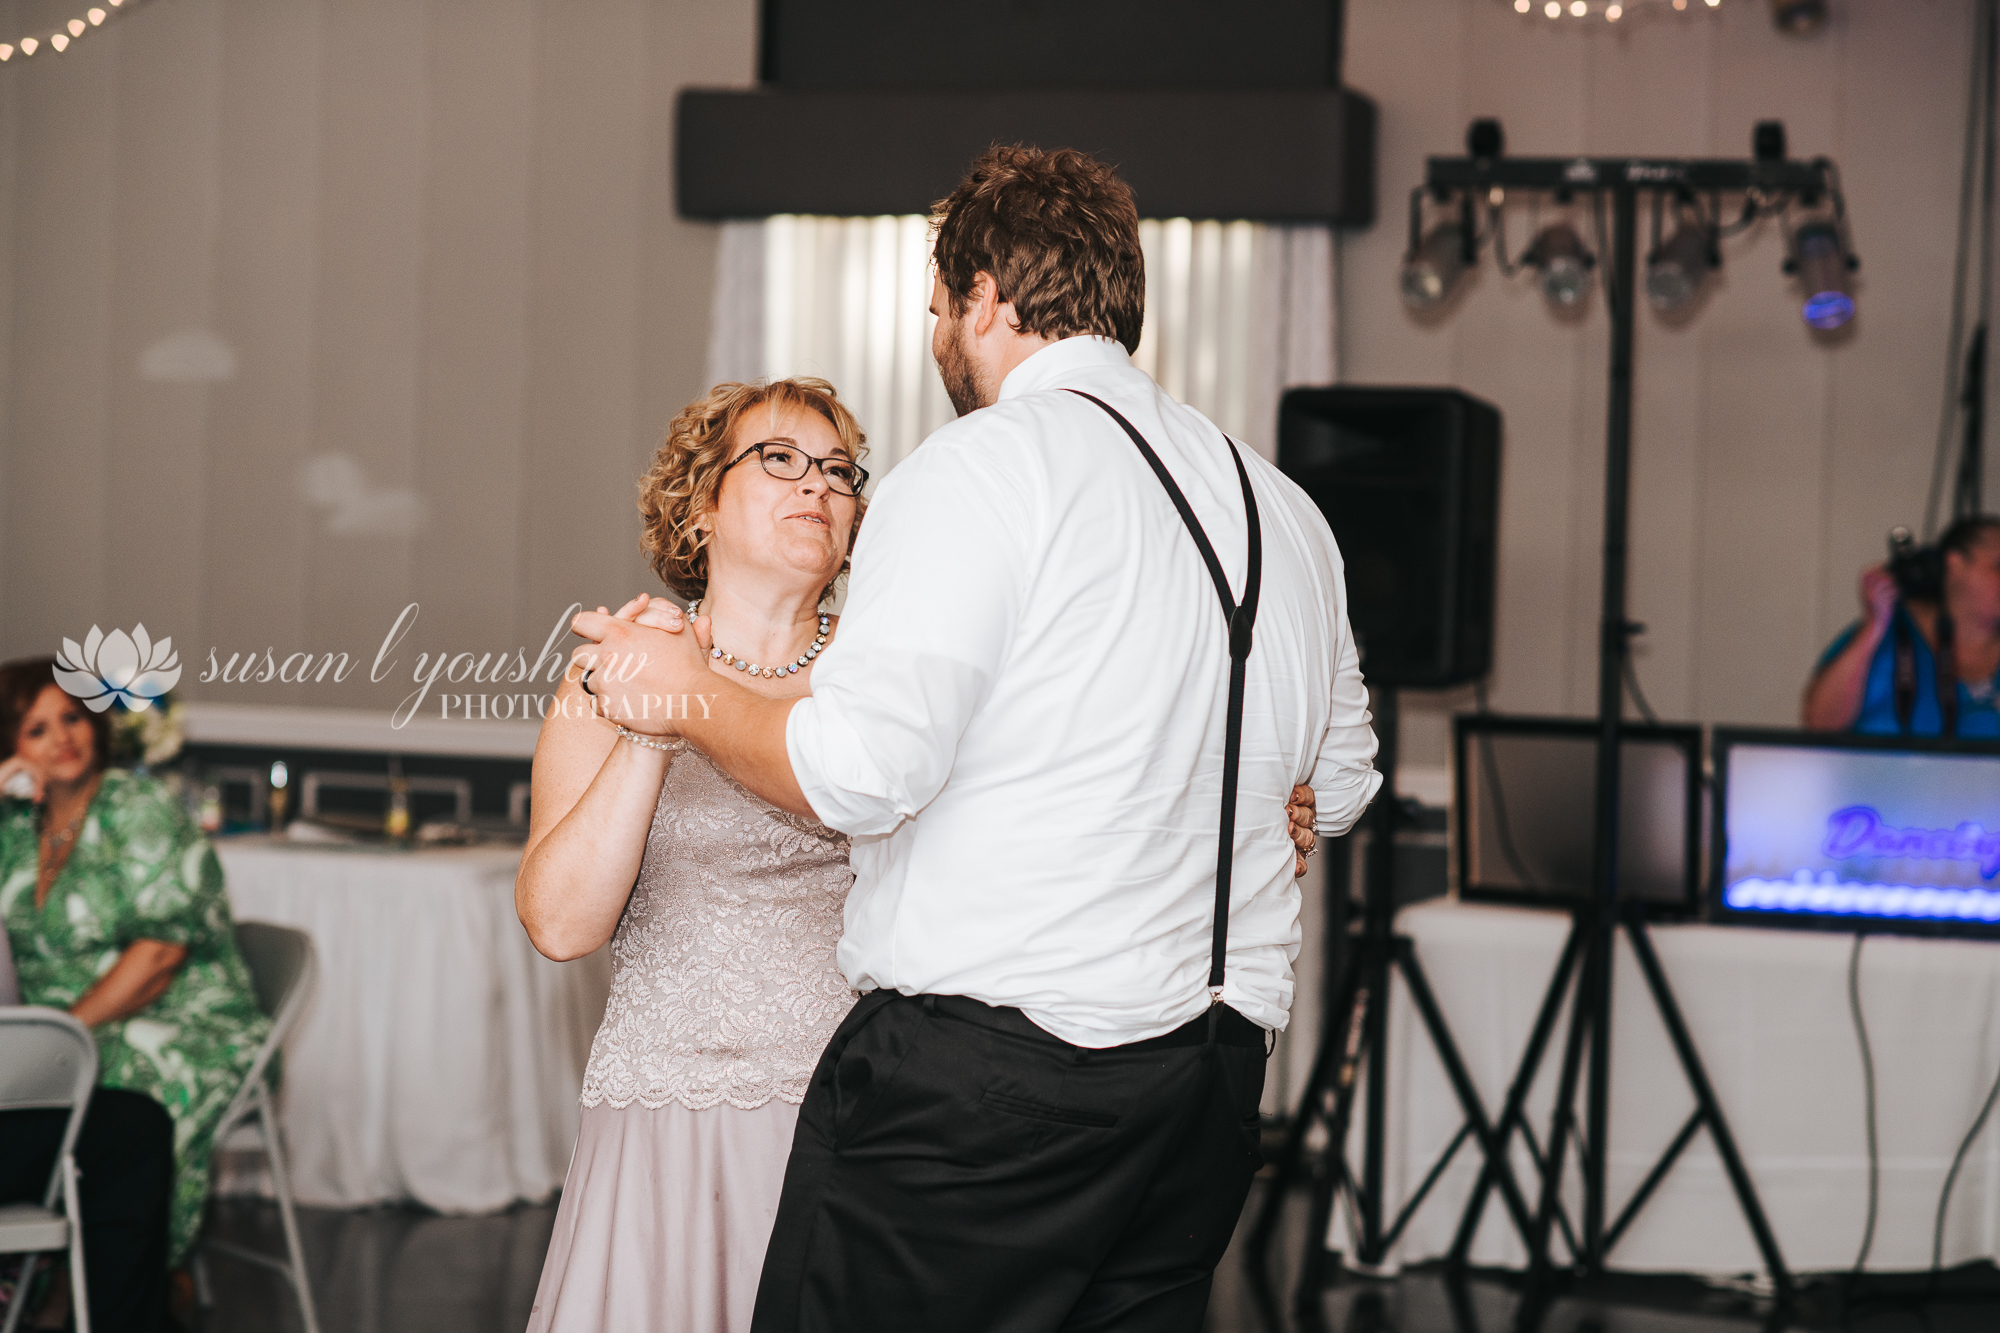 Katelyn and Wes Wedding Photos 07-13-2019 SLY Photography-118.jpg